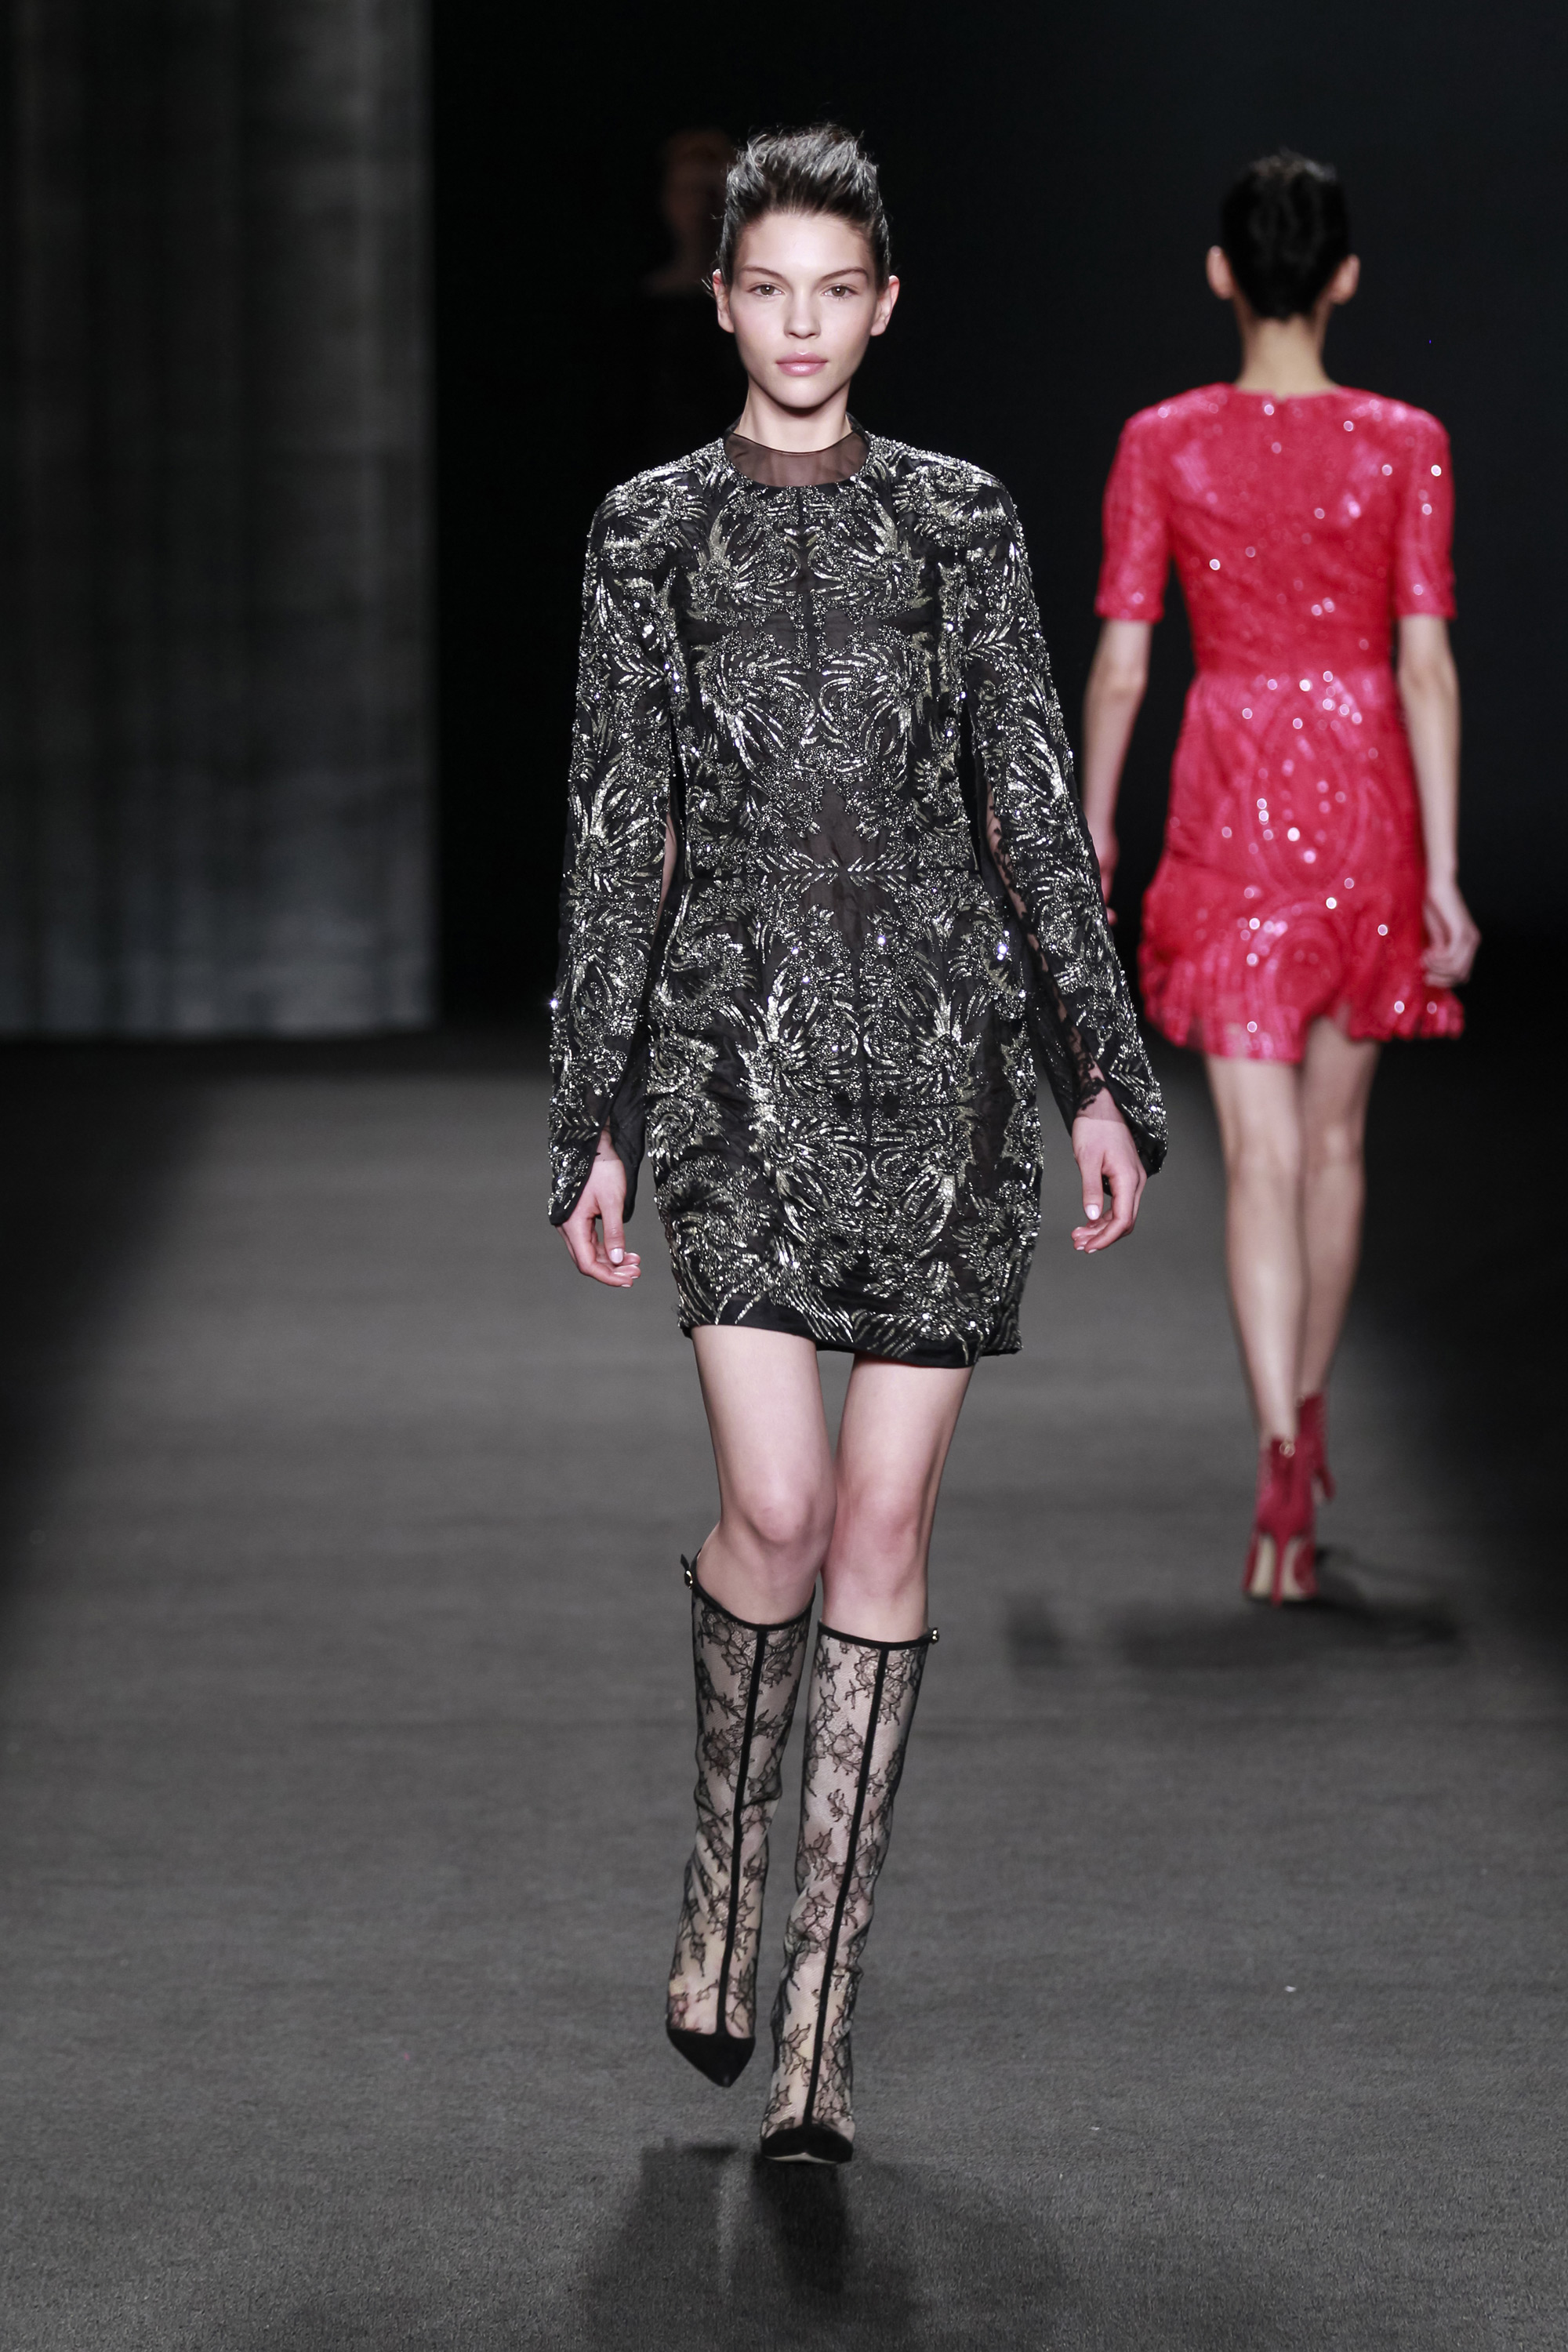 25_fw14dlr_lhuillier_278